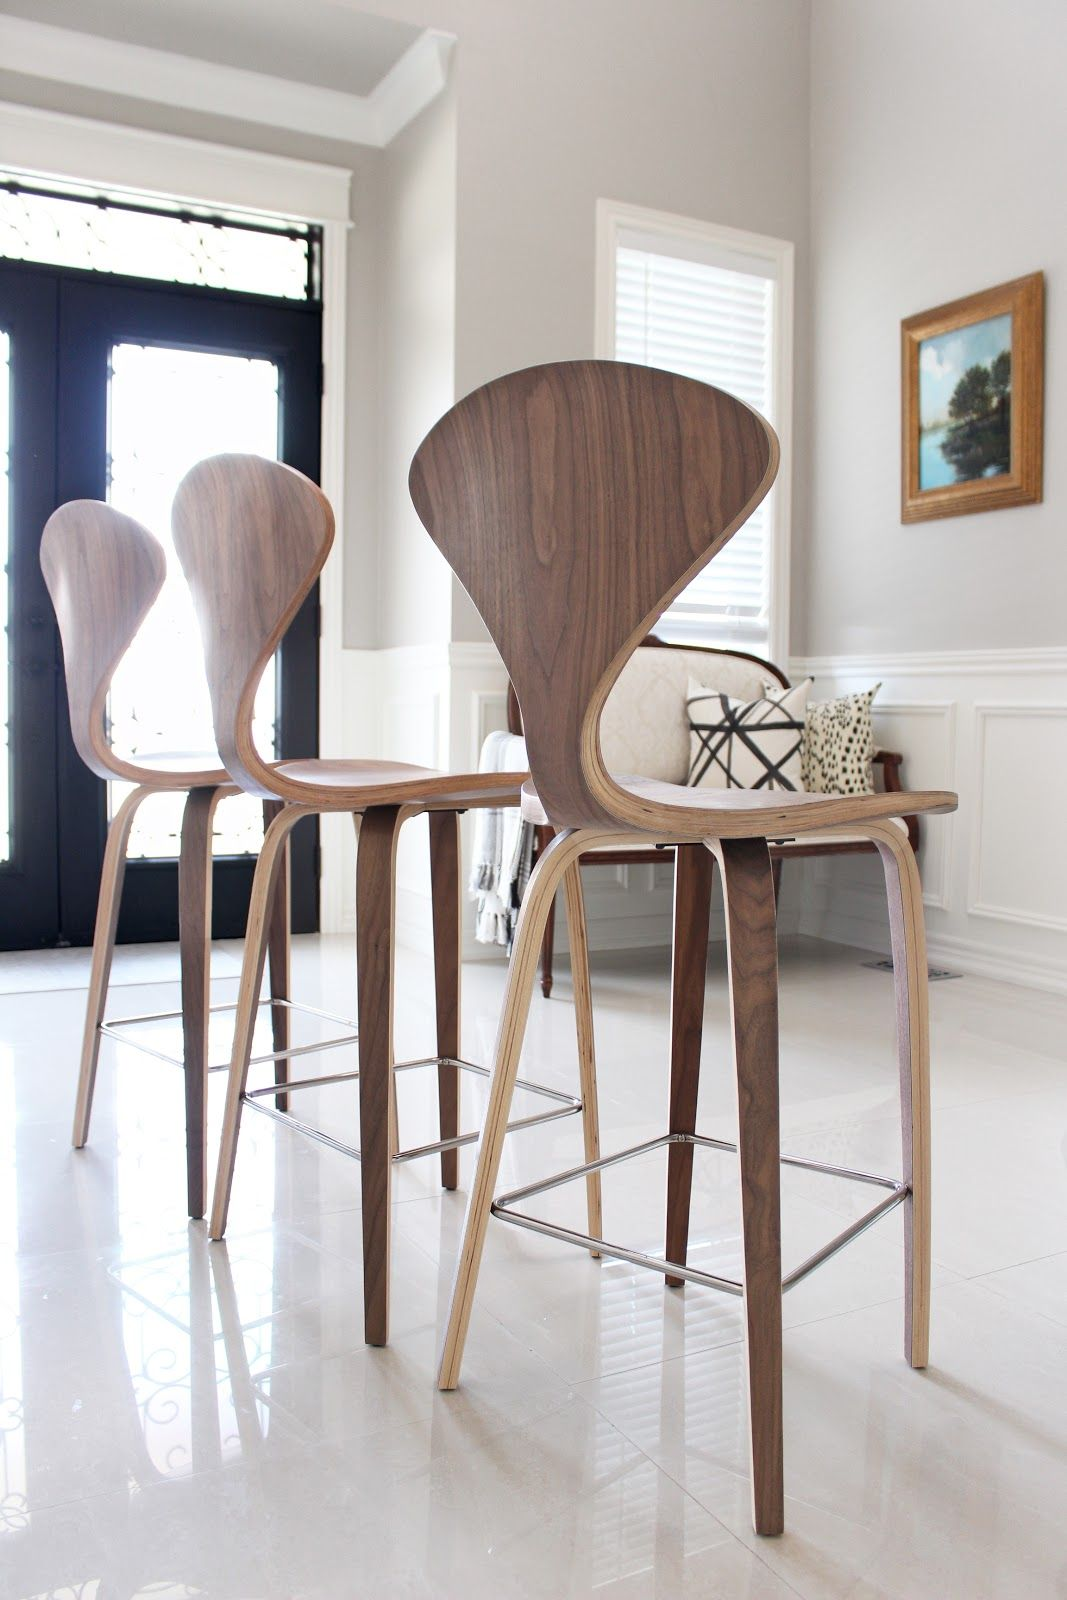 Kitchen Counter Stools Remodeling Virginia Beach Norman Cherner Style In Walnut From Rove Concepts Mcm